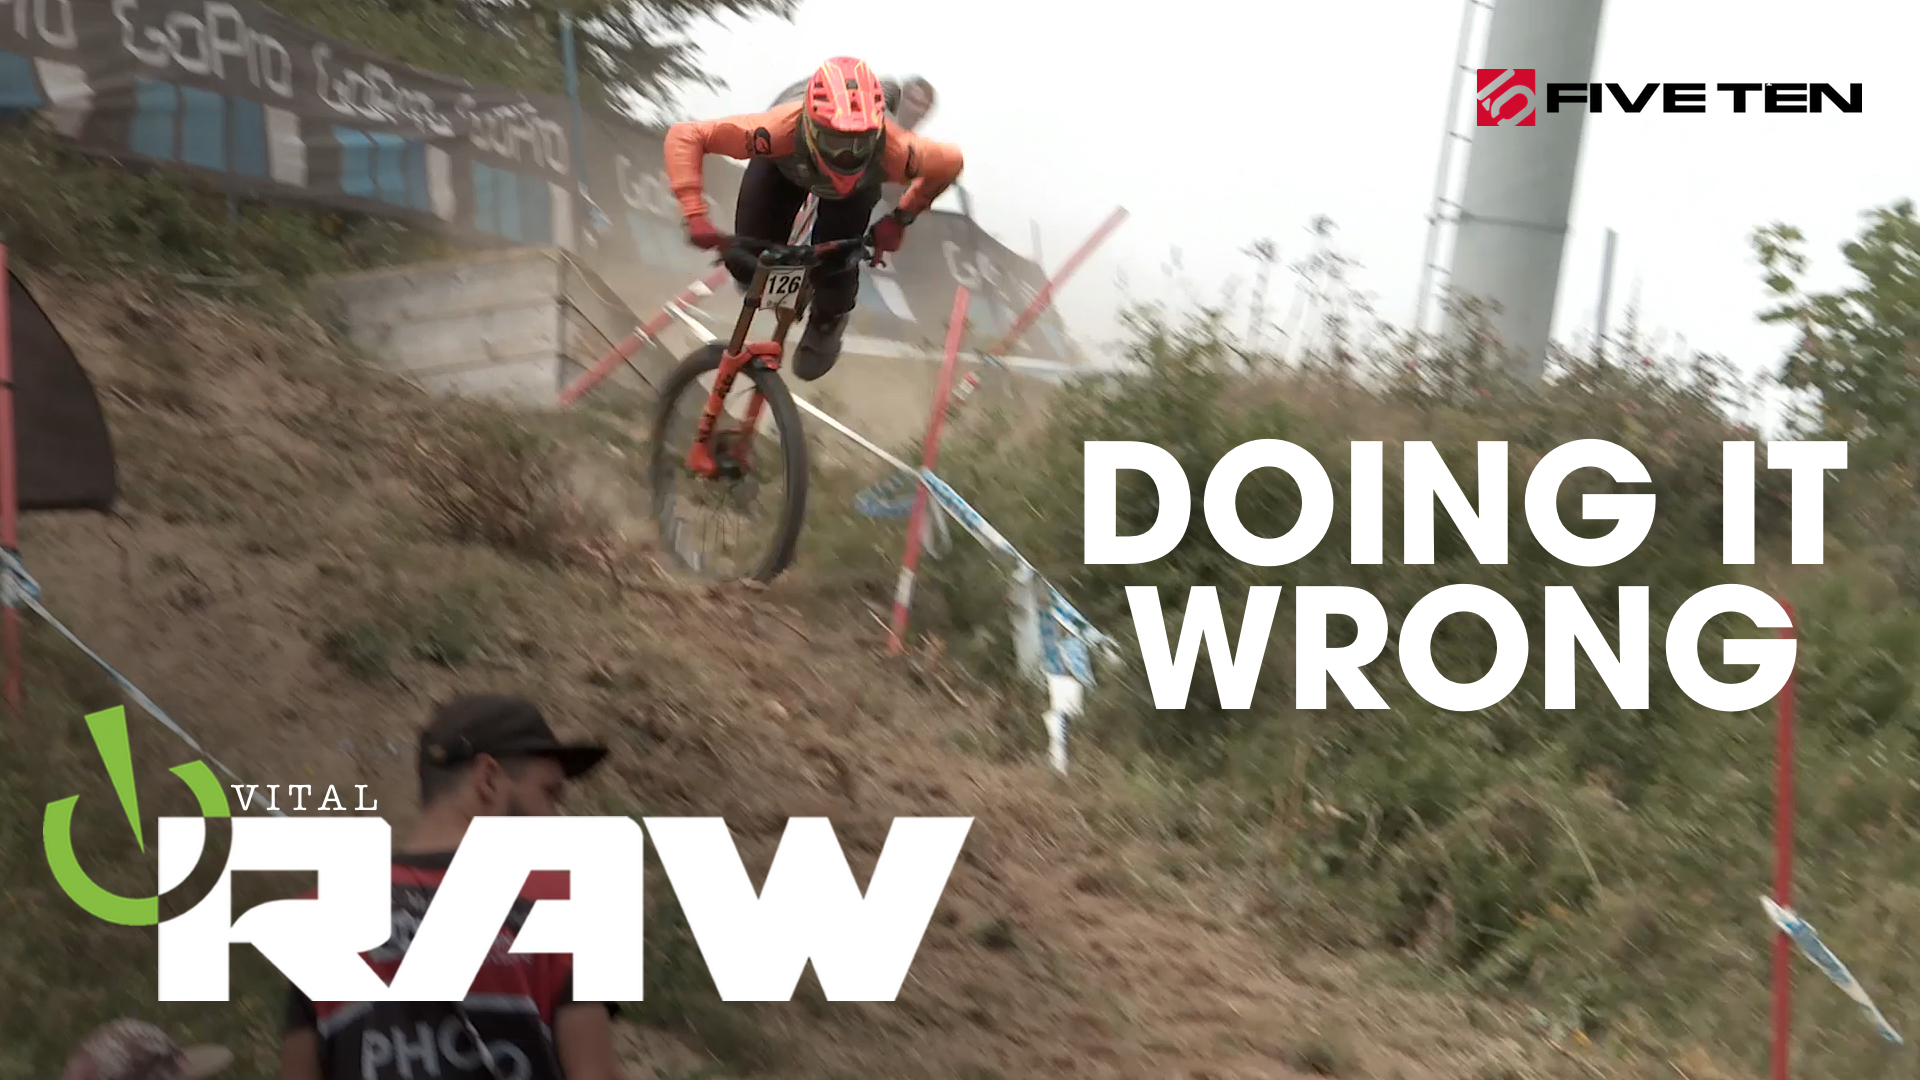 Vital RAW - Doing it Wrong, World Cup DH-style